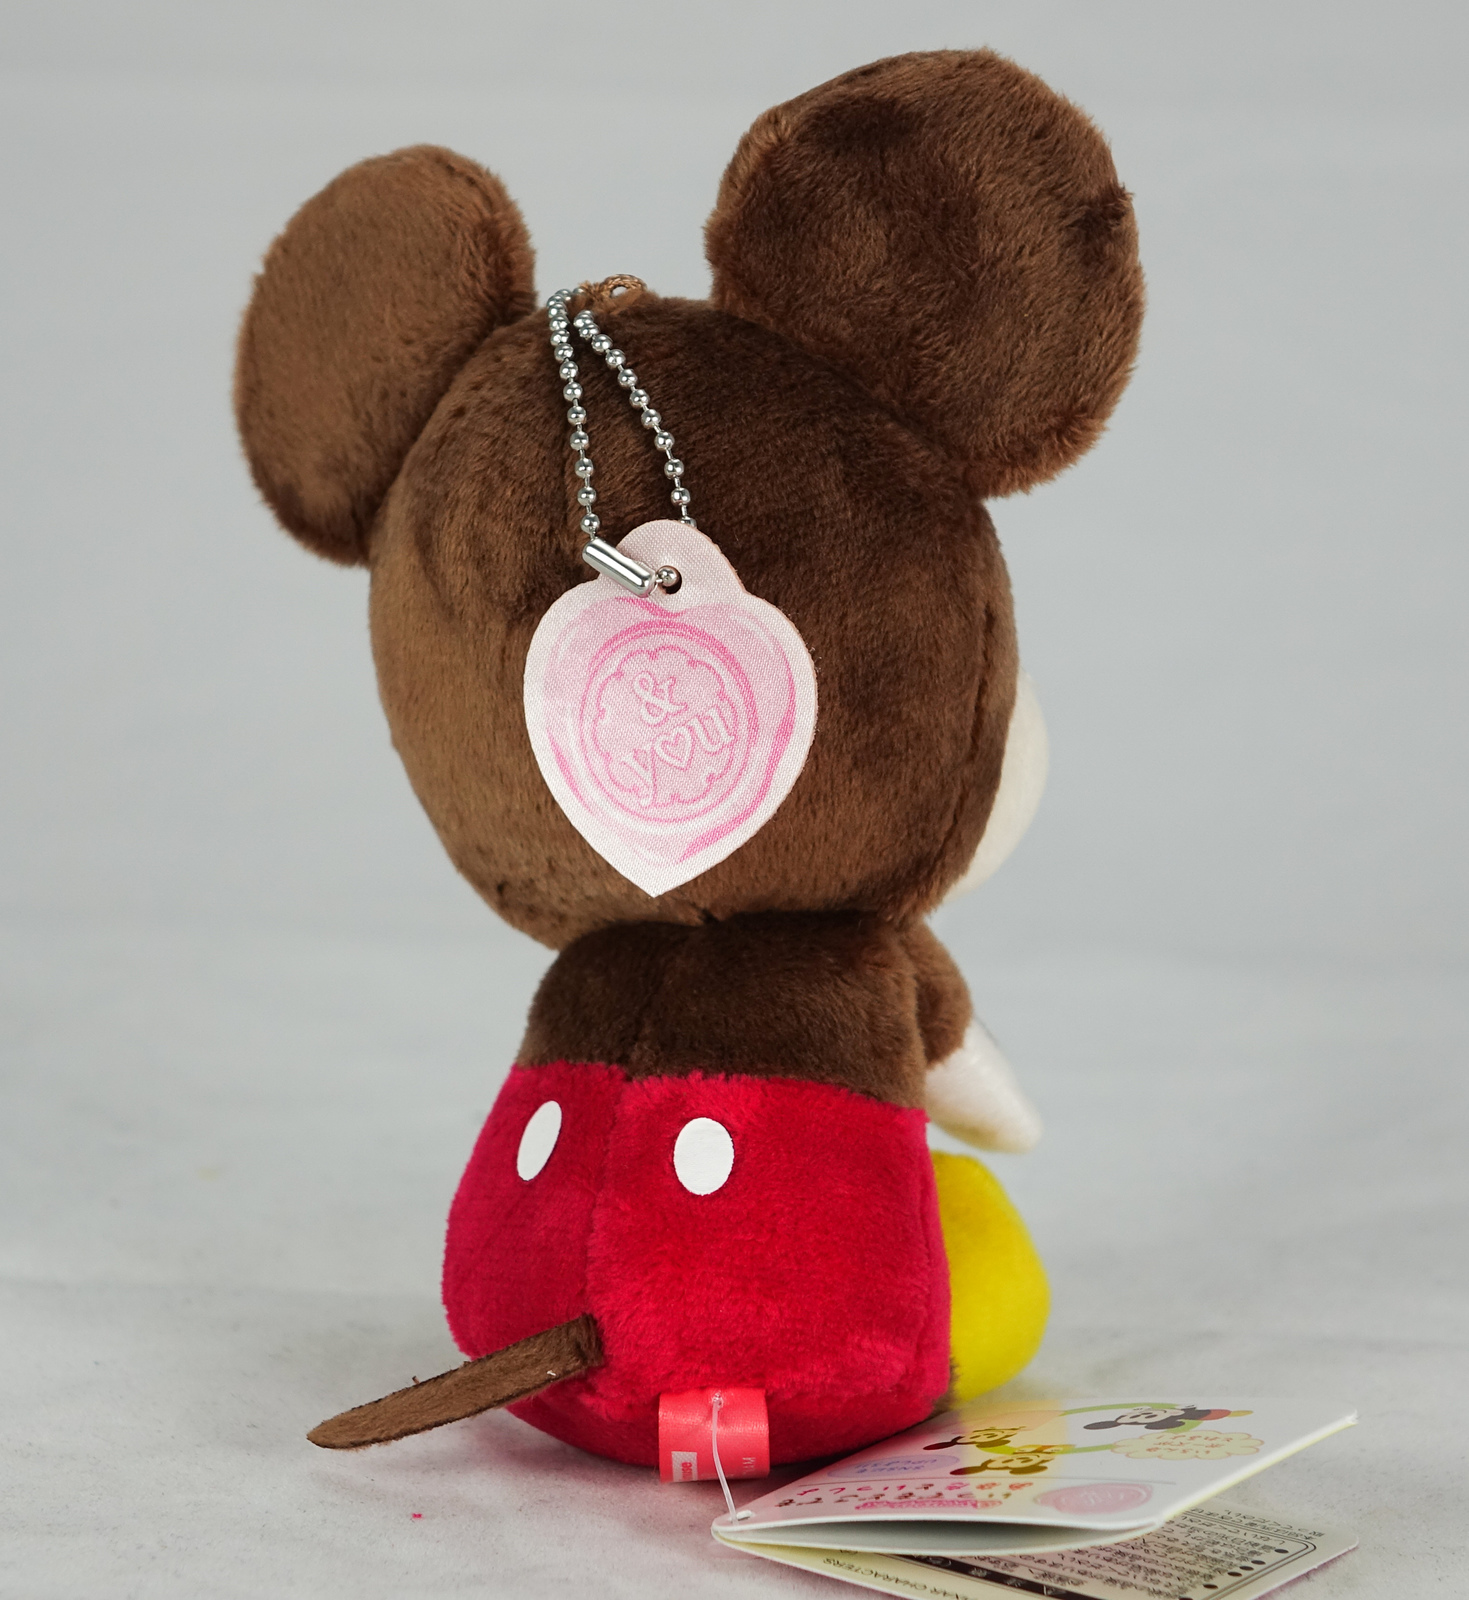 Disney Characters Plush - Mickey Mouse image